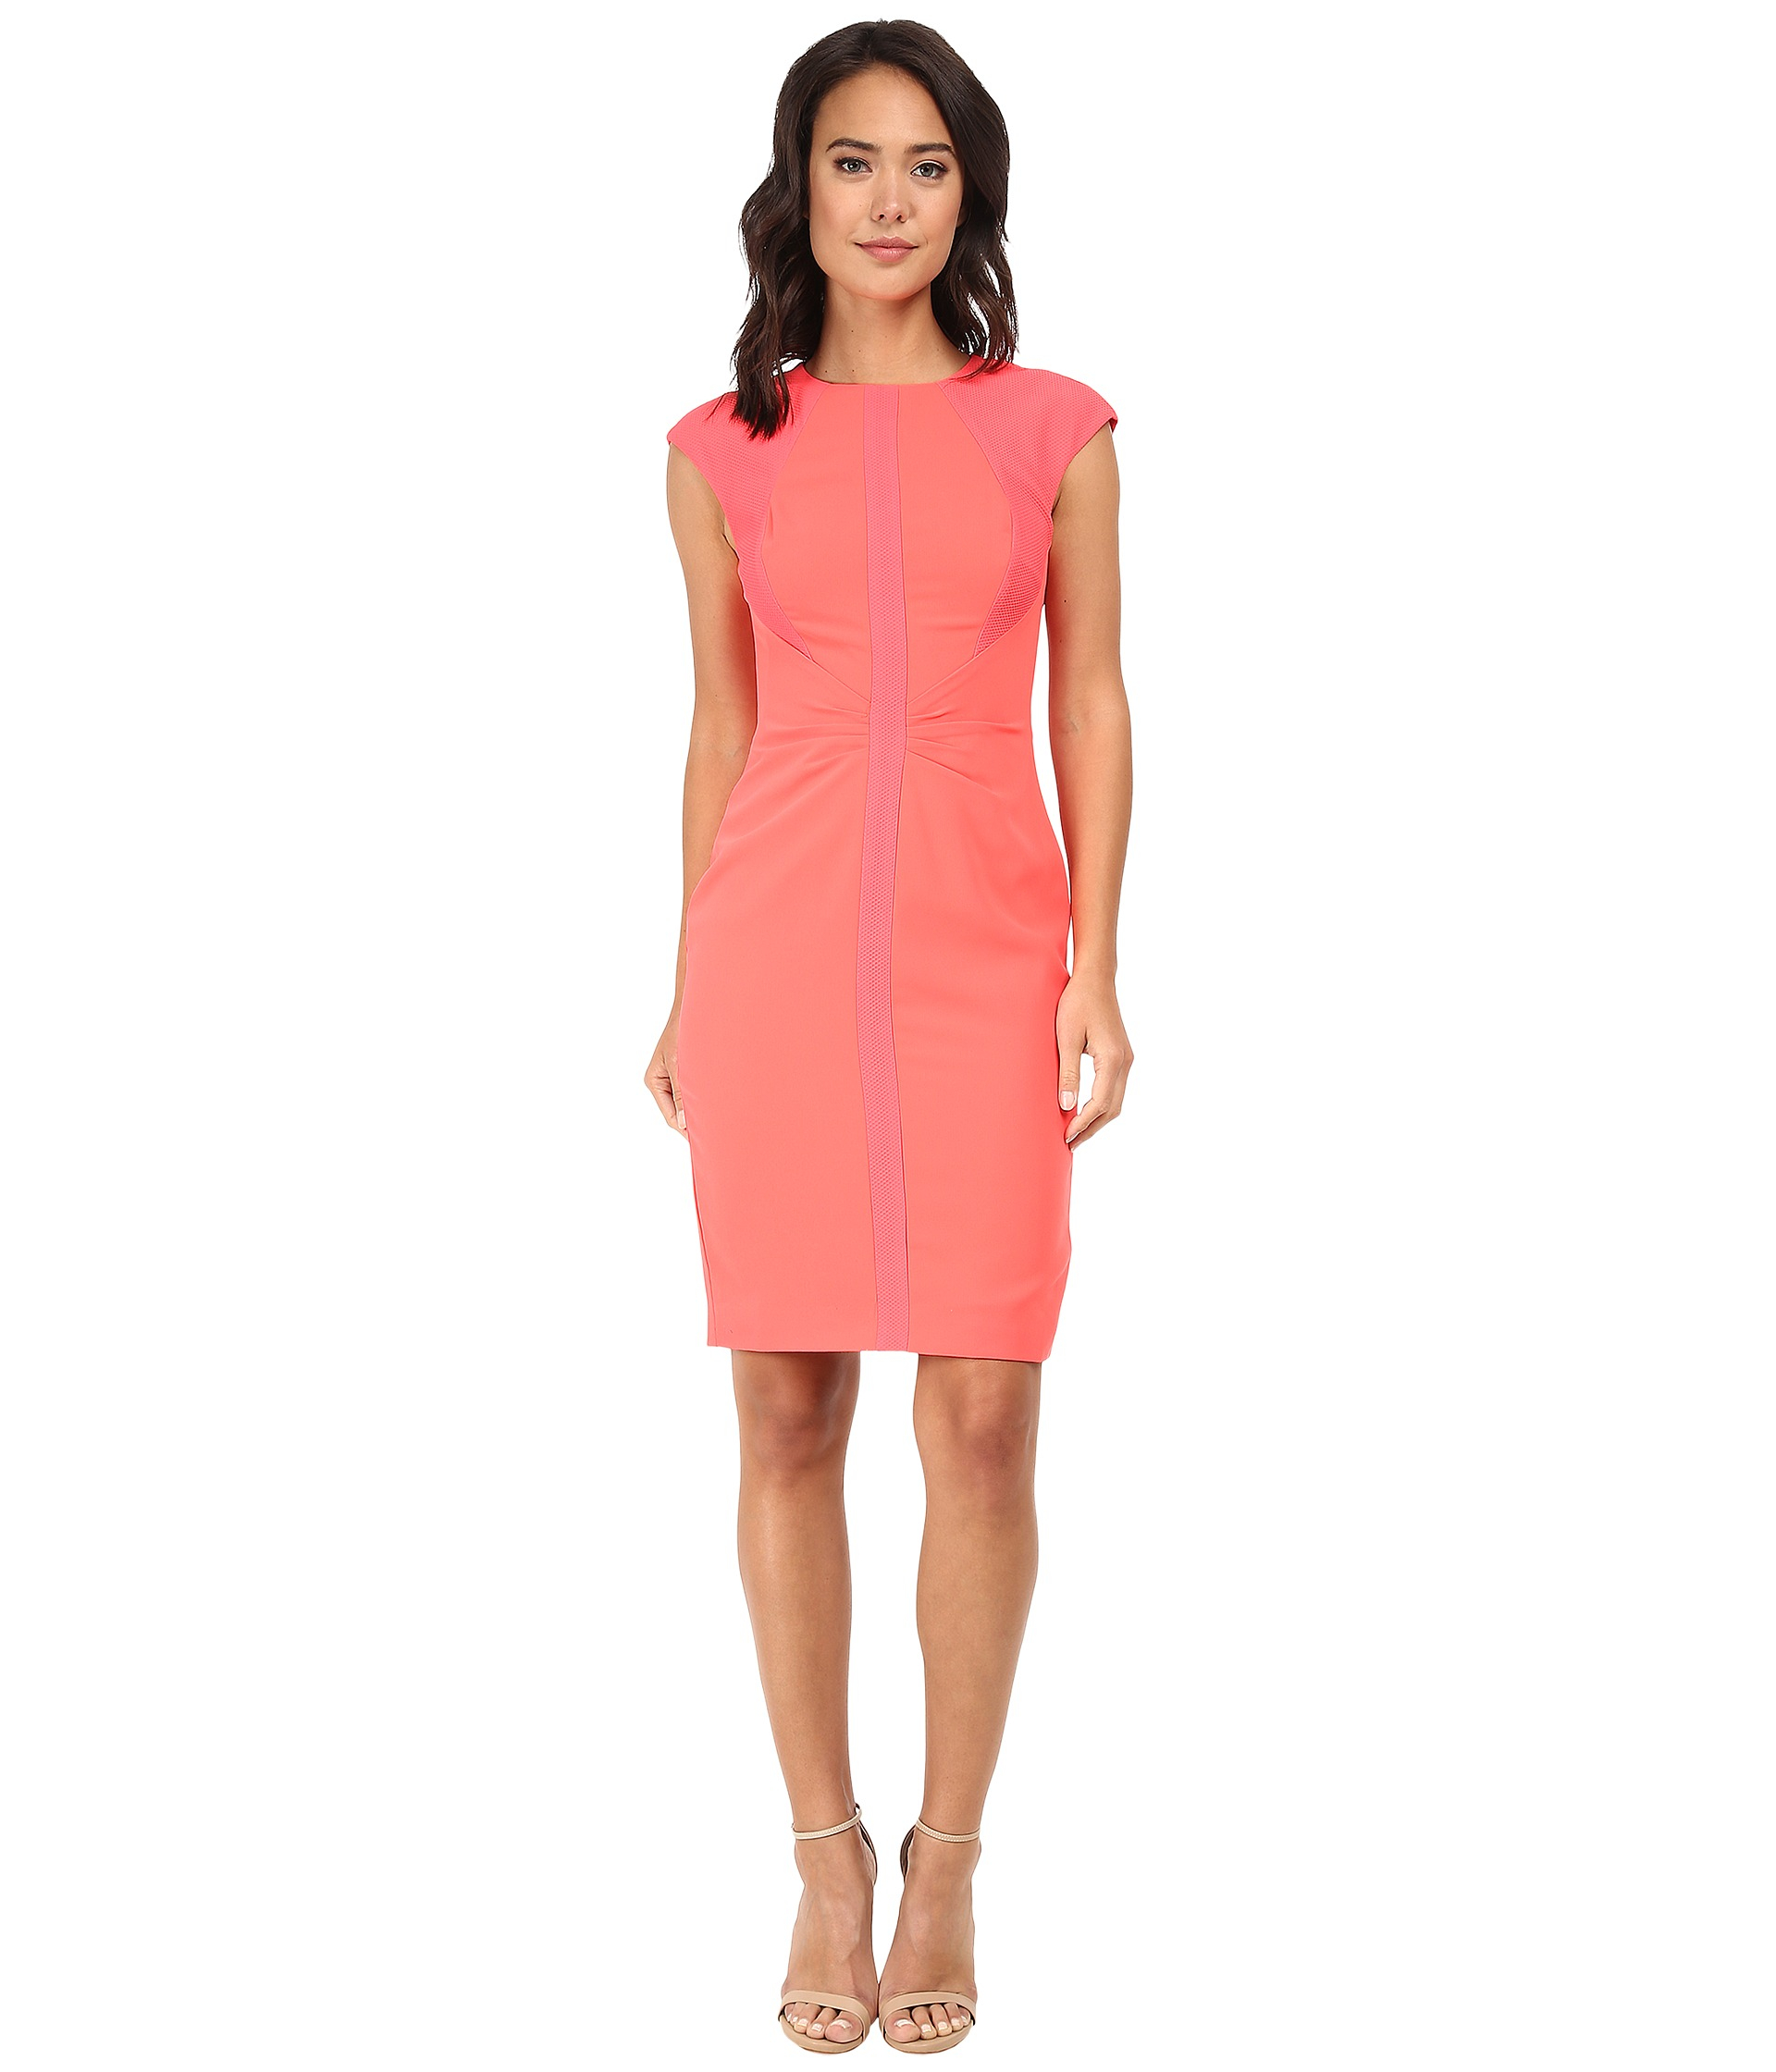 Ted baker Acerola Mesh Panel Pencil Skirt Dress in Orange | Lyst